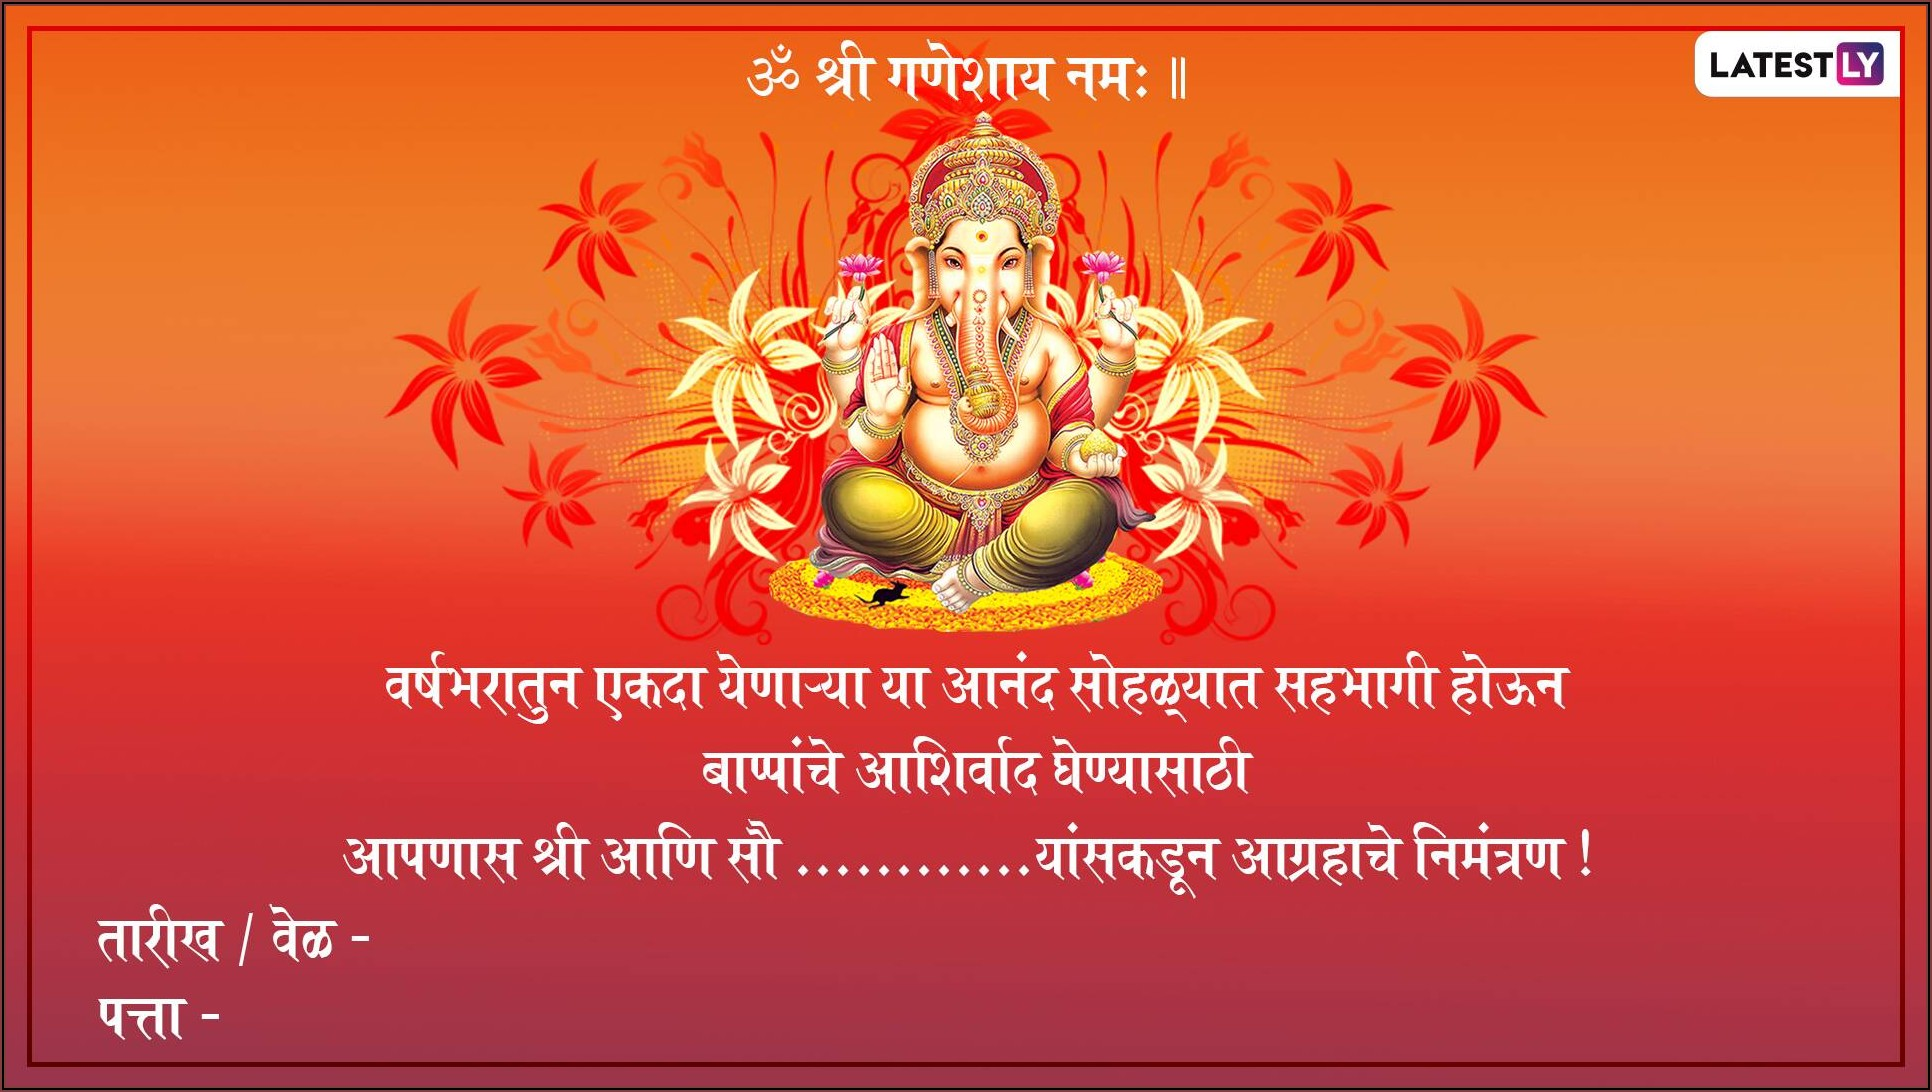 Invitation Card Format For Ganesh Puja In Marathi